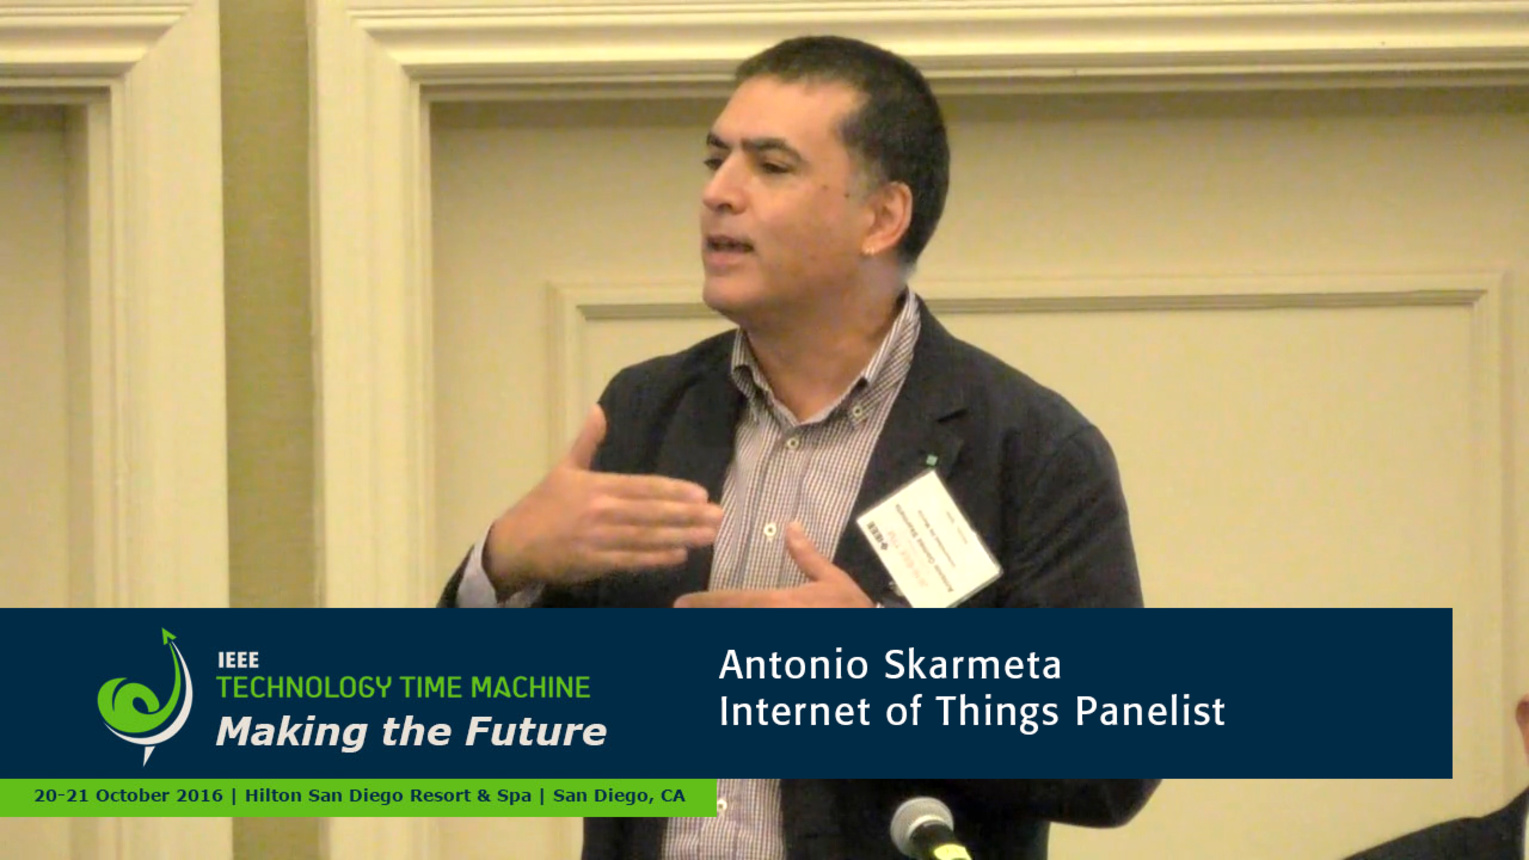 Internet of Things Panelist - Antonio Skarmeta: 2016 Technology Time Machine